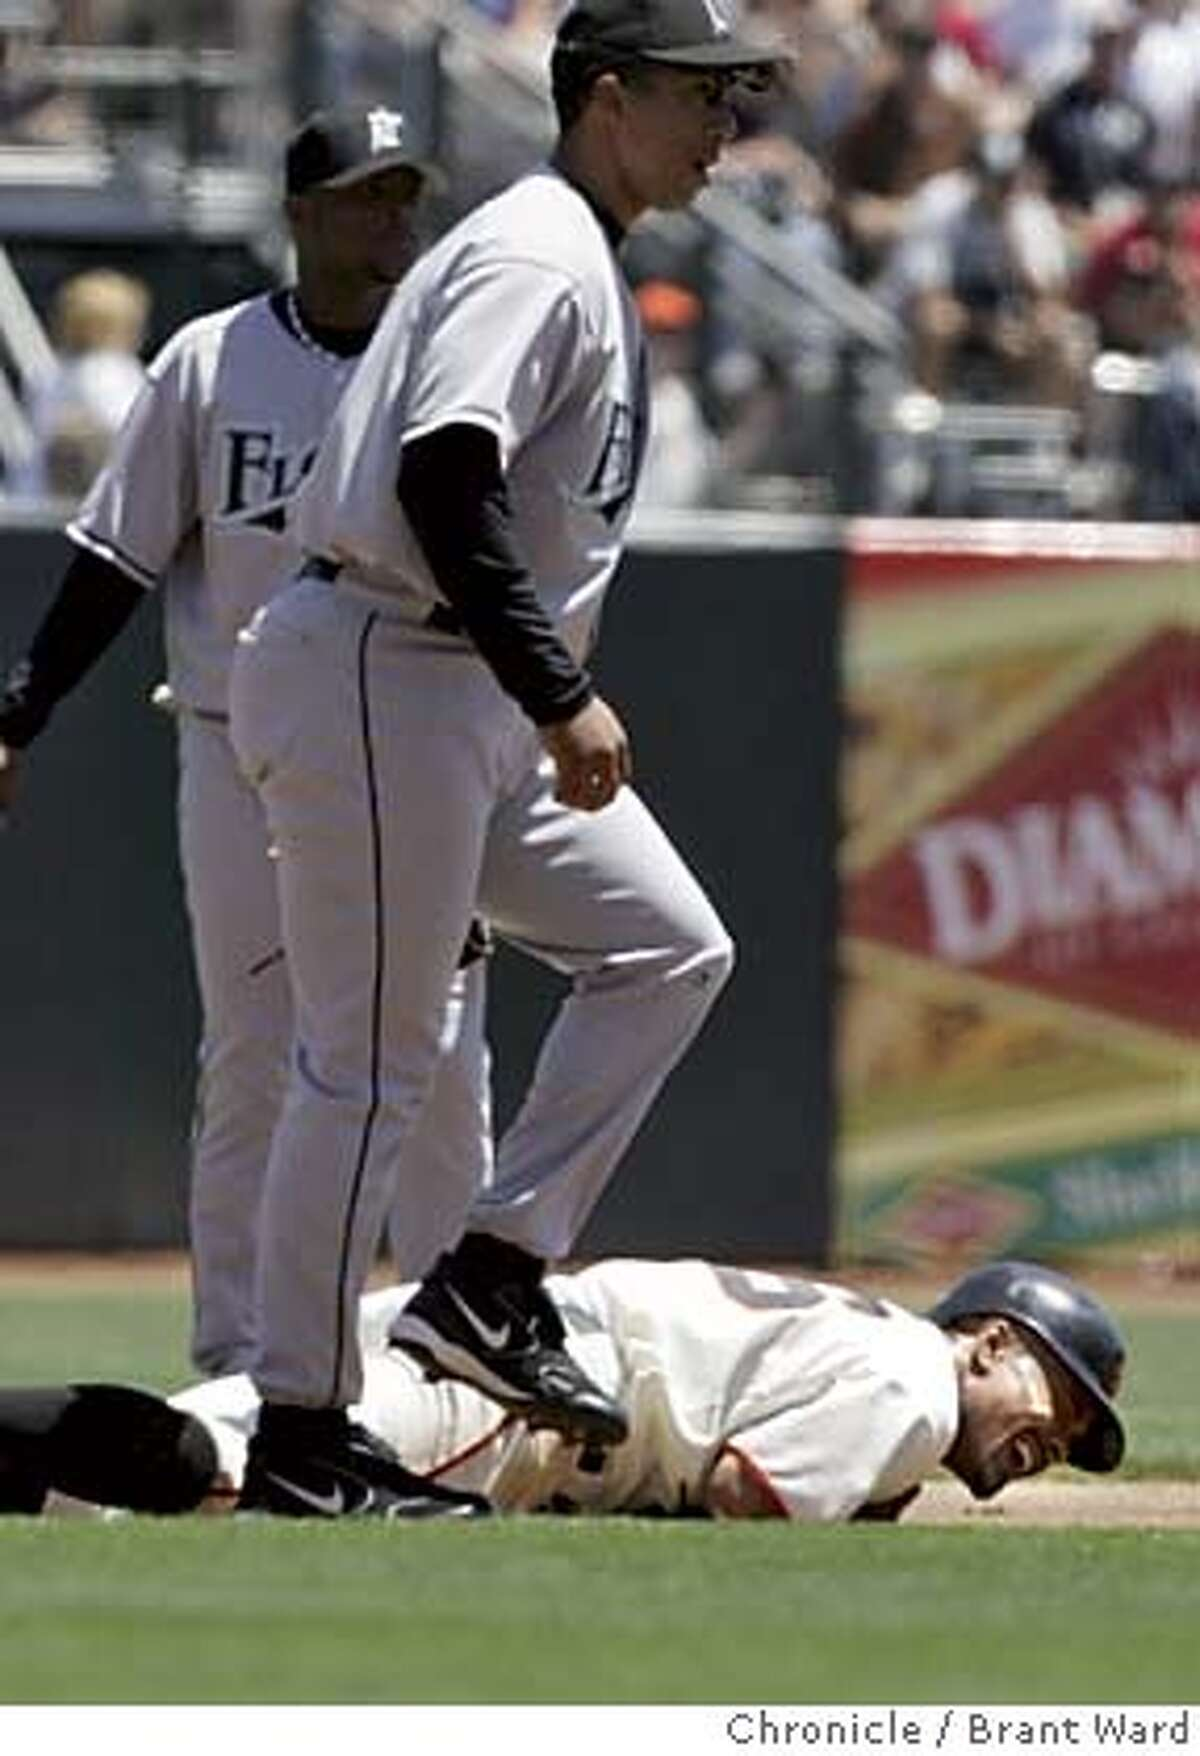 The Giants were undone on the bases...here Jason Ellison is in pain after being forced at second in the first inning on a fielders choice by Edgardo Alfronso. Damion Easley defends. The Giants finished their home stand with a loss against the Marlin's 4-1 at SBC Park.Brant Ward 7/25/05